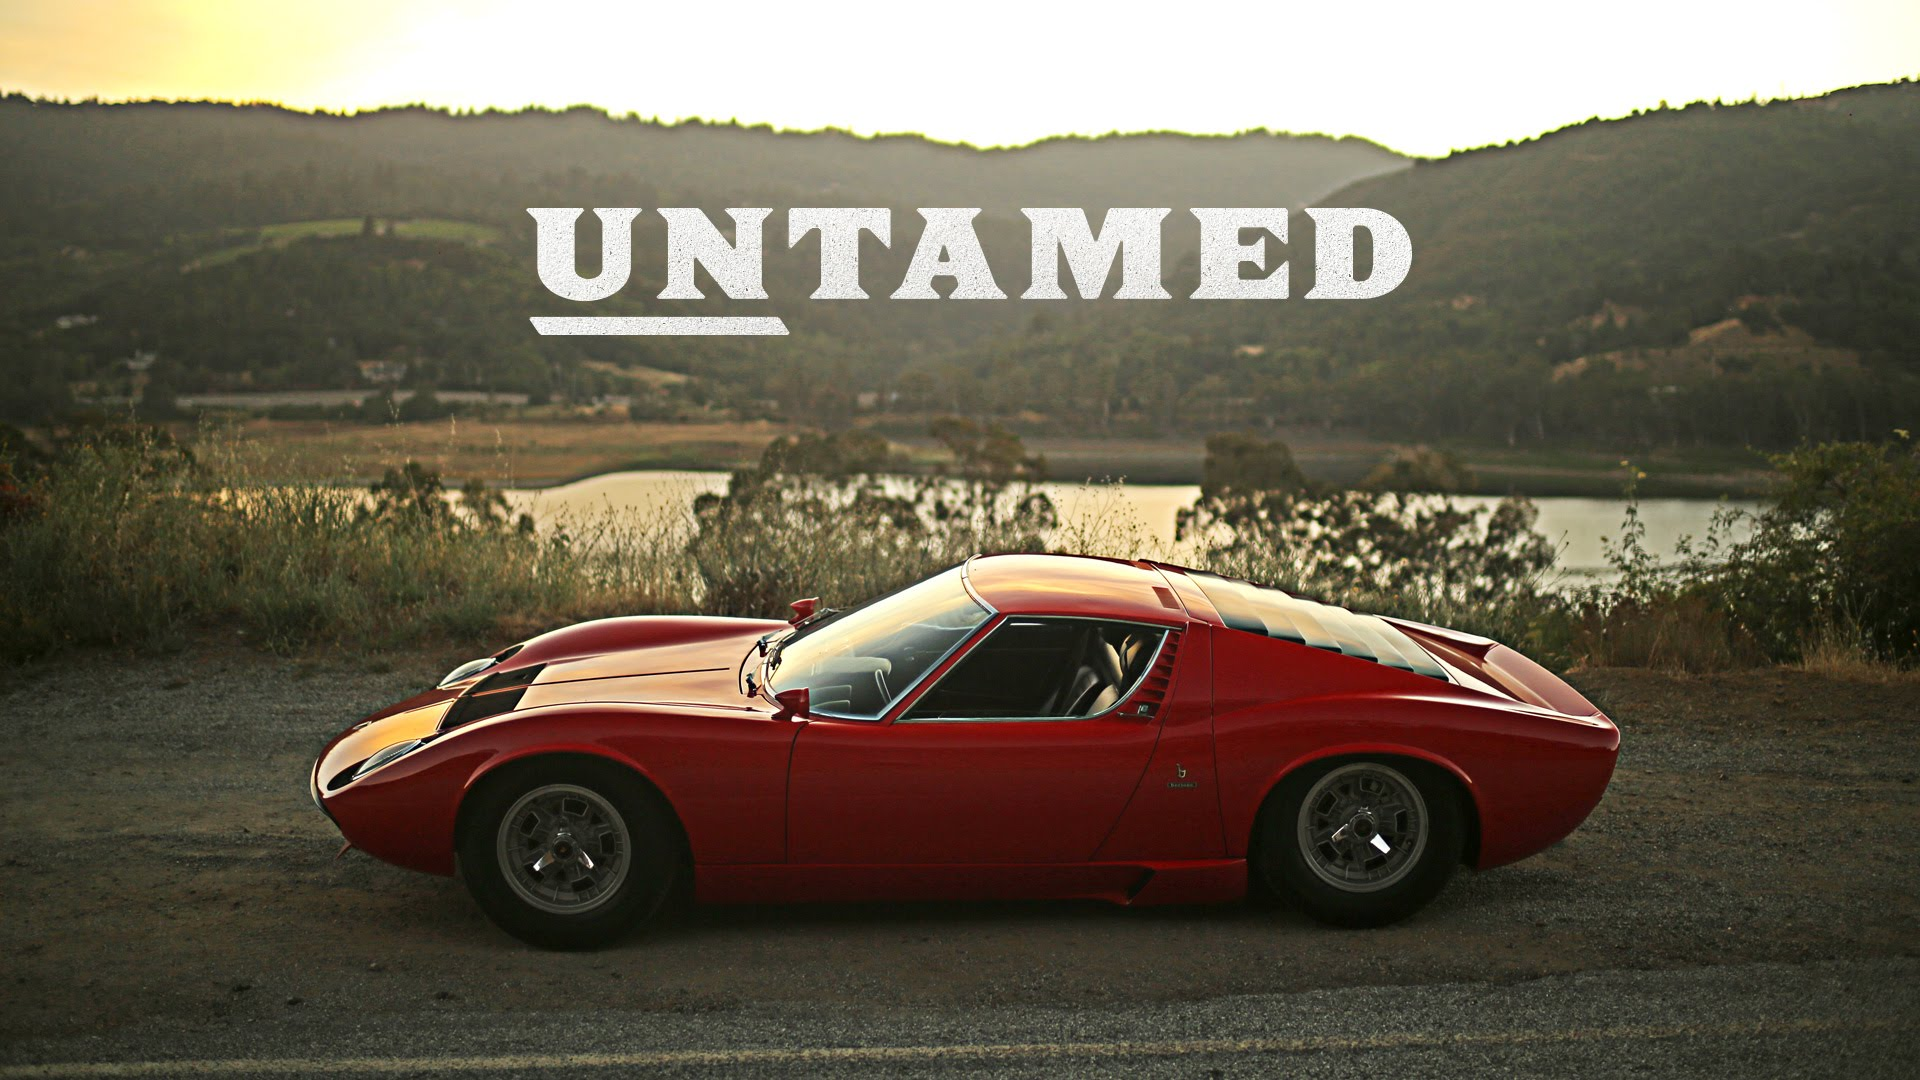 Petrolicious: The Lamborghini Miura Is Still Untamed | HorsepowerKings.com